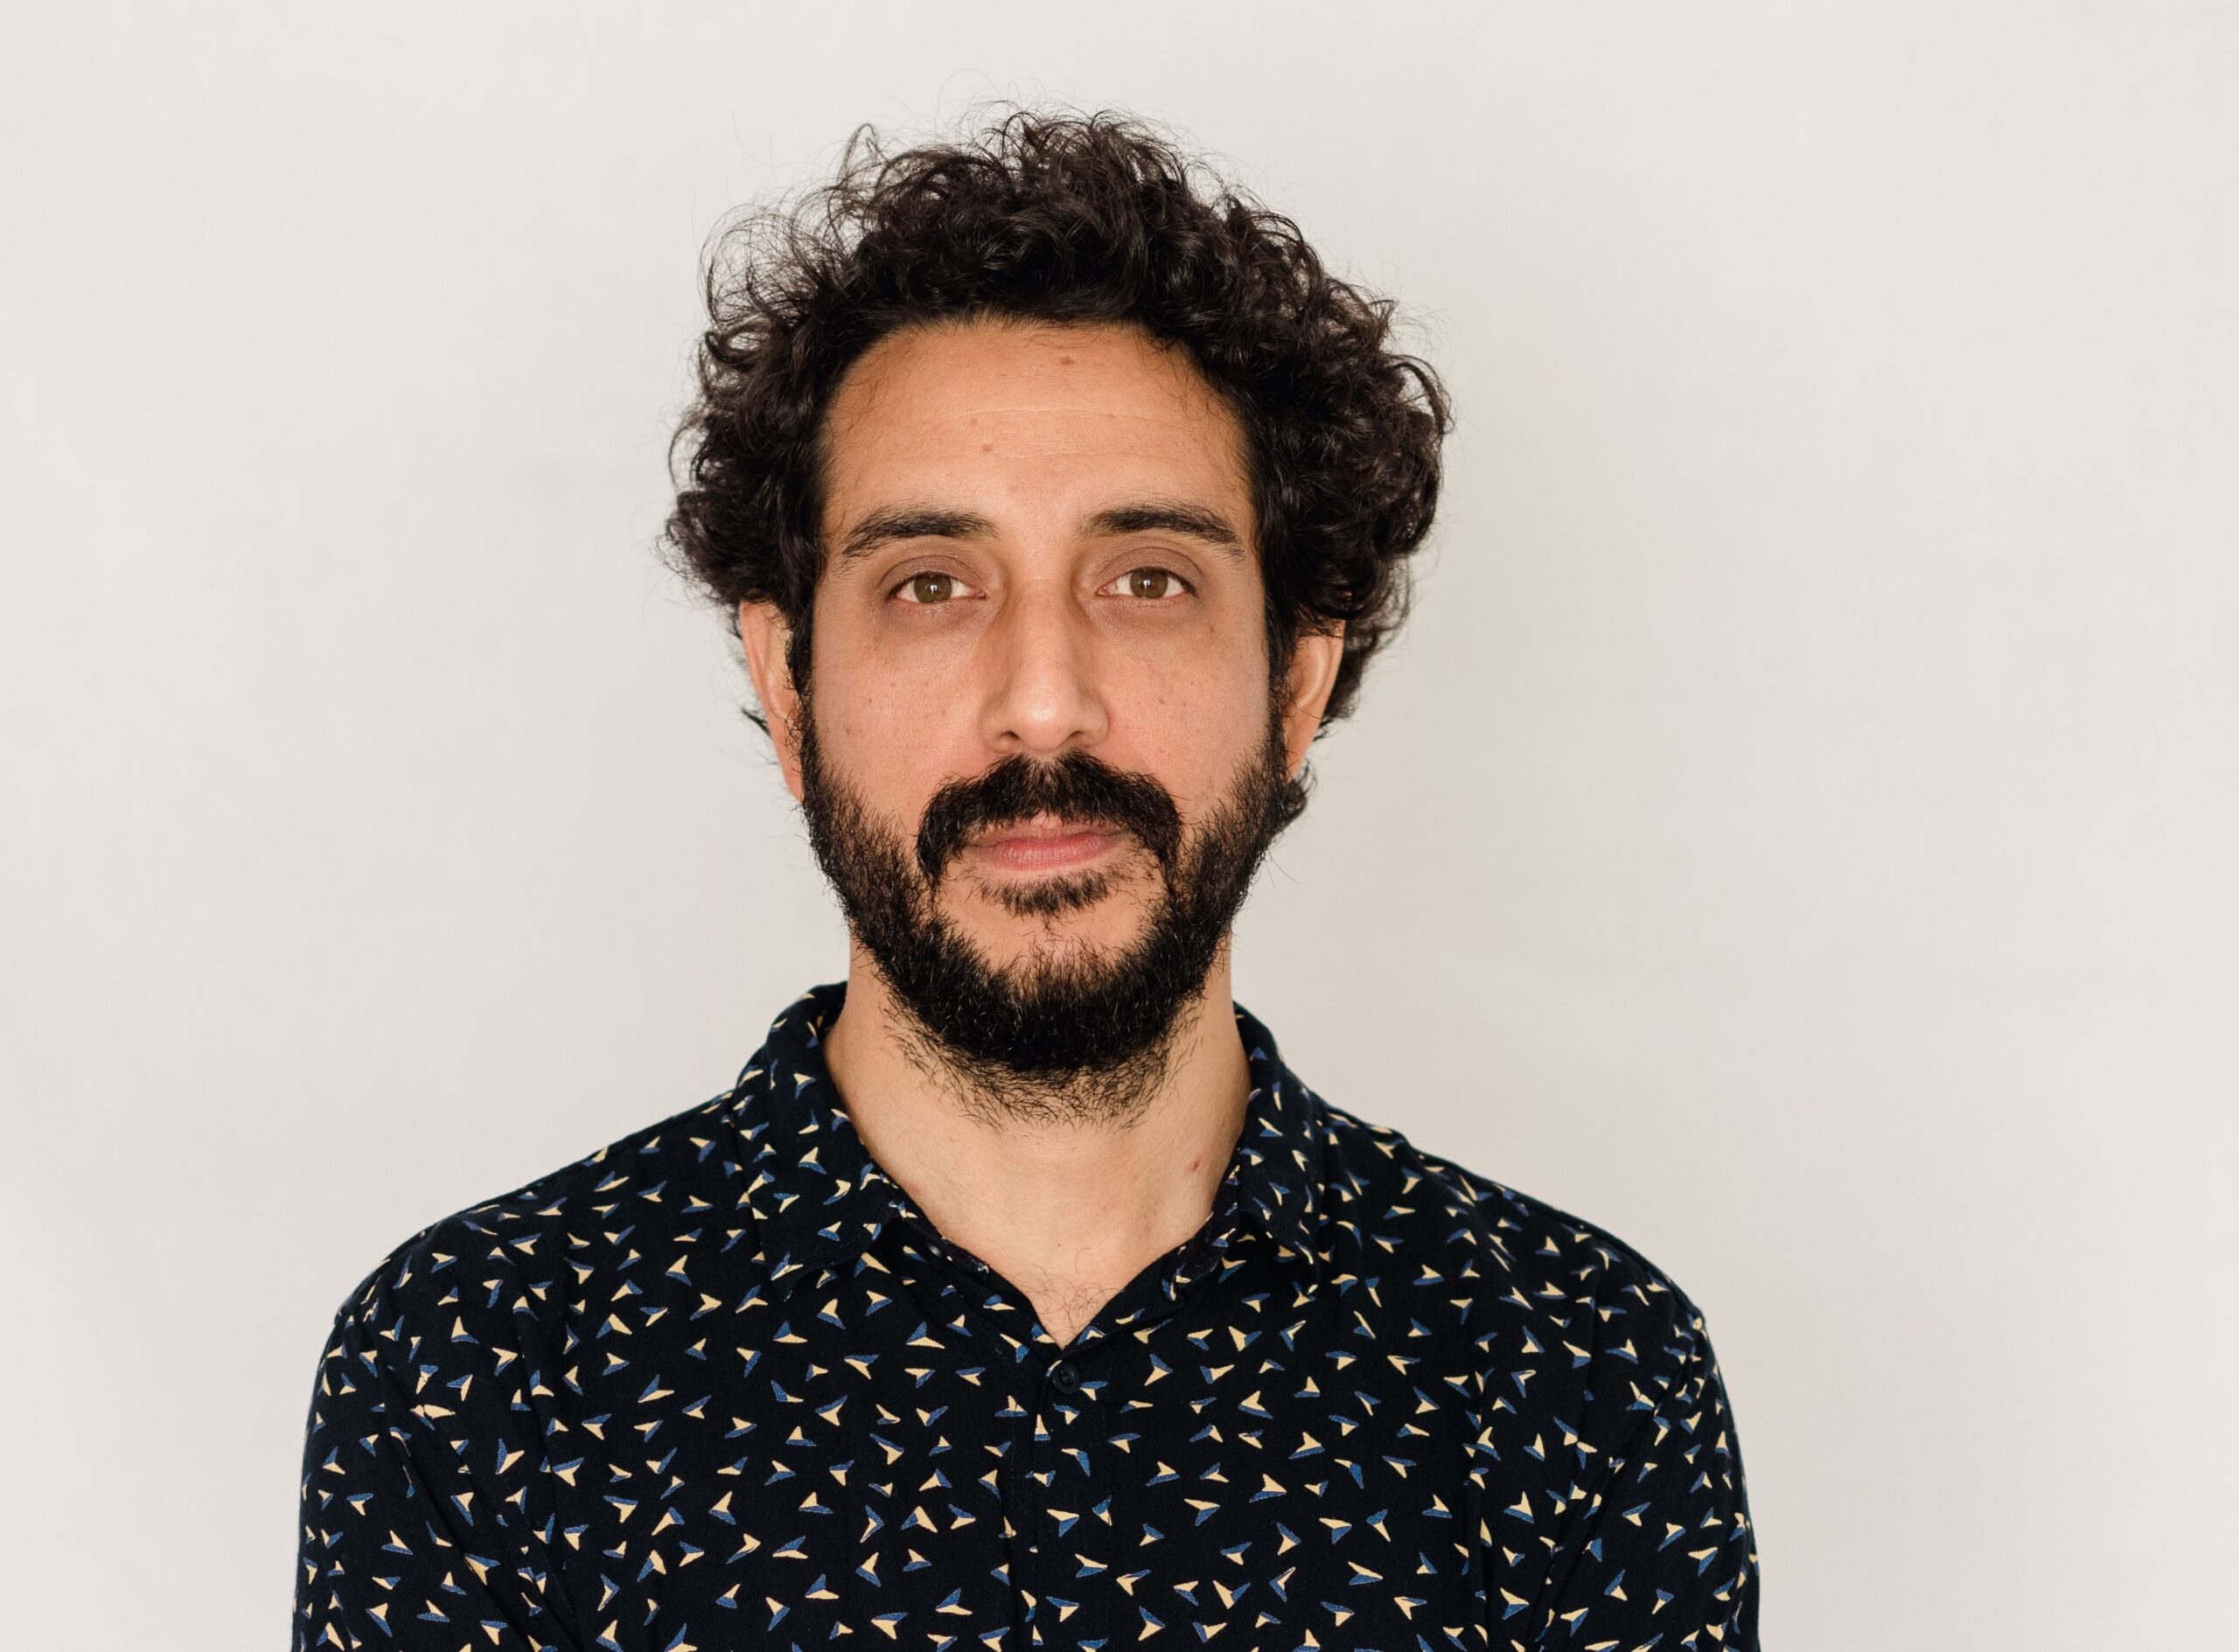 INTERVIEW WITH DIRECTOR HERNÁN VELIT